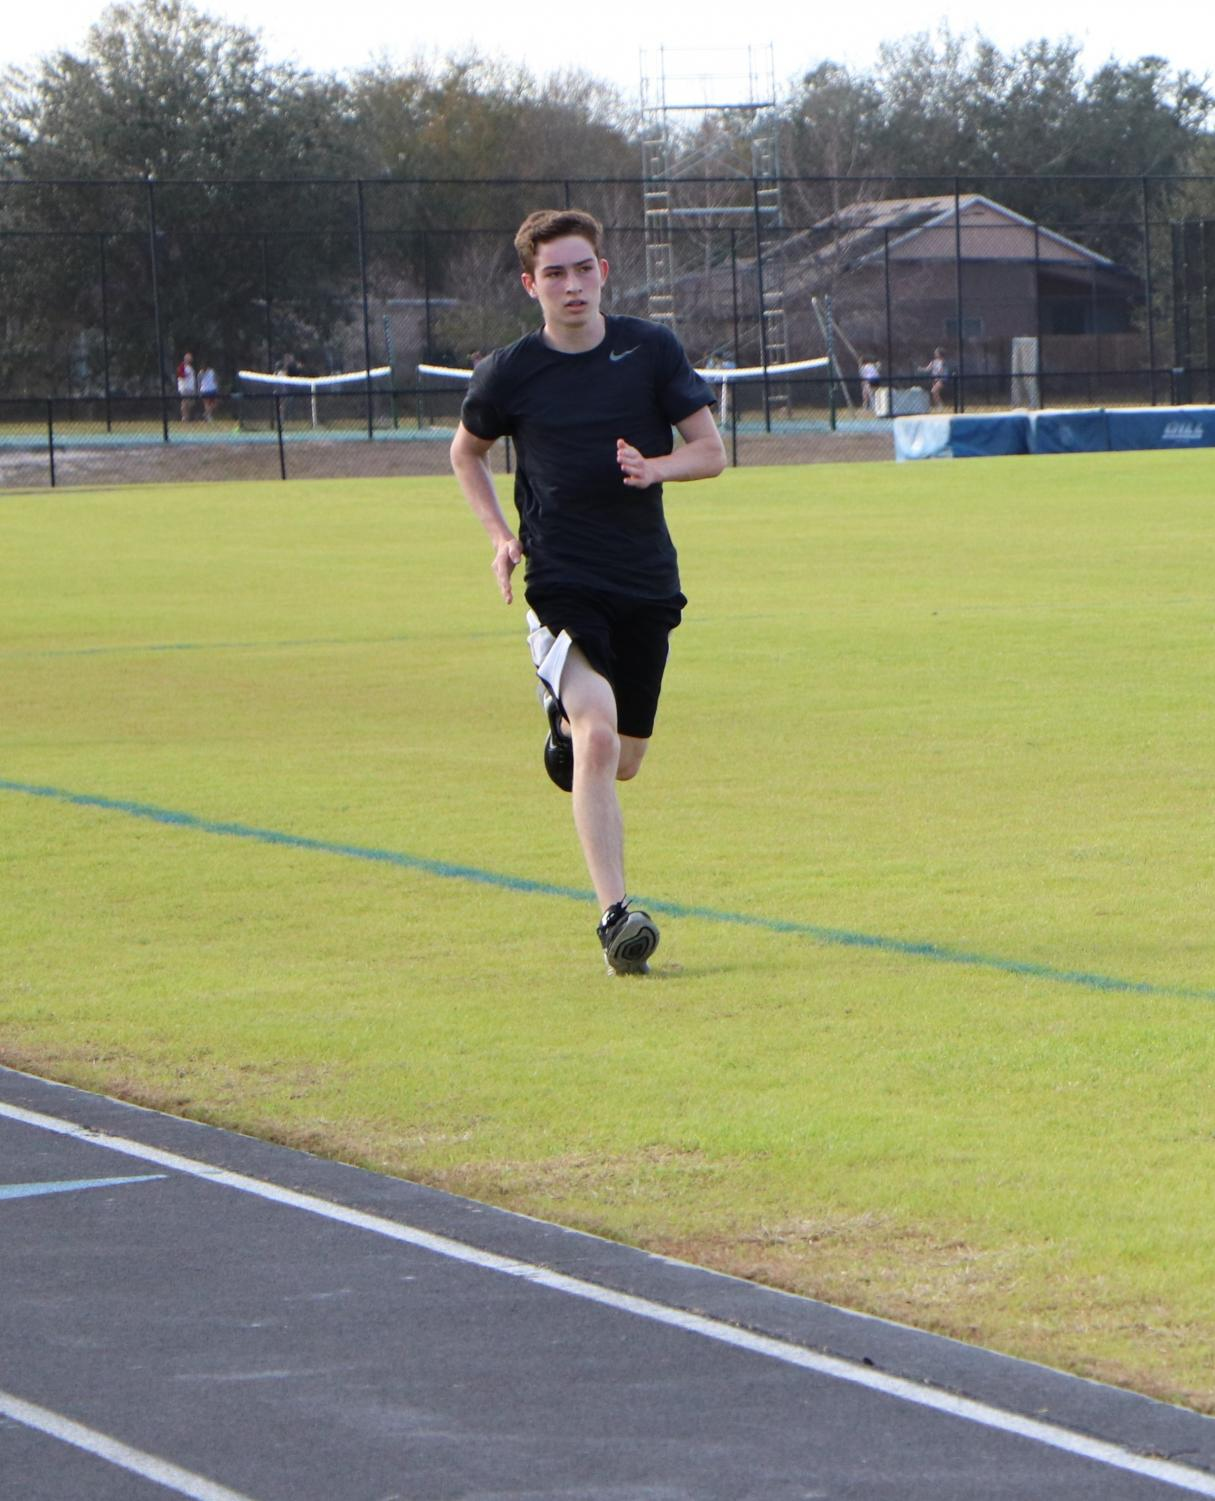 Track runner Thomas Welsh runs on the grass during track practice last year to avoid injury since the grass is not as hard as the asphalt track. The team hopes to raise enough money to get a rubber track by winter break.